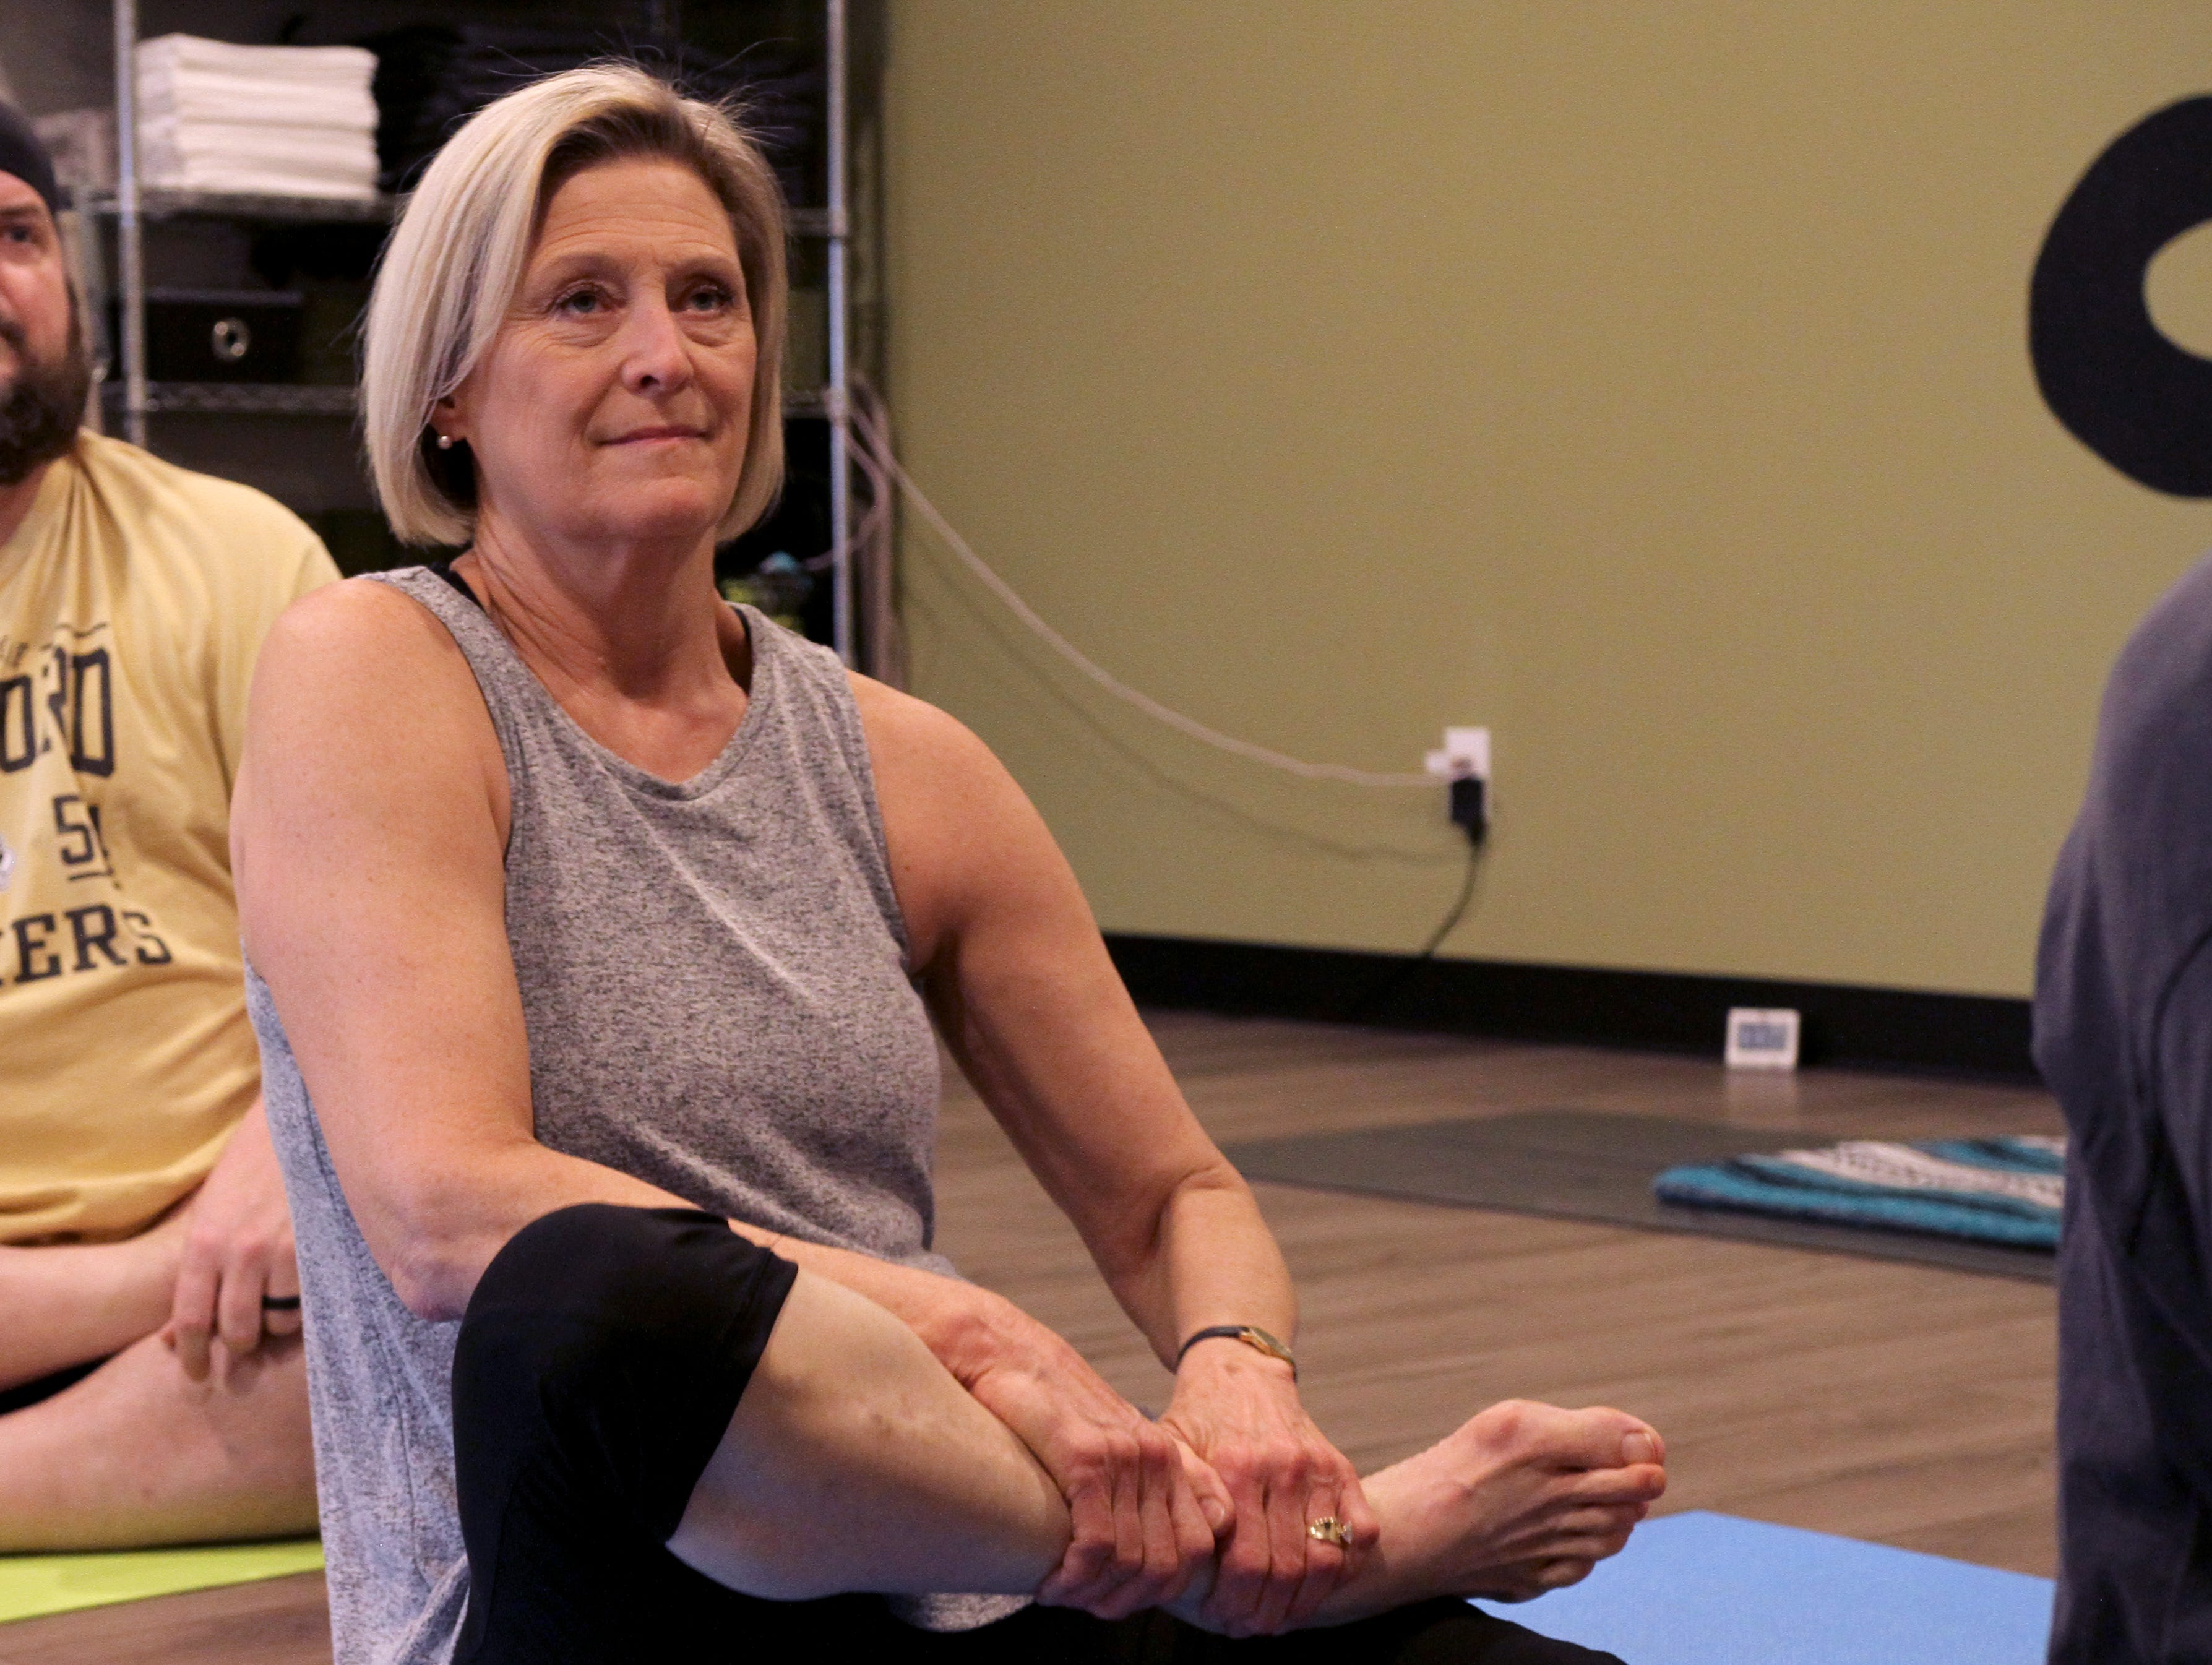 Lauren Nitschke gets into a pose during a session at Deep in the Heart yoga studio.